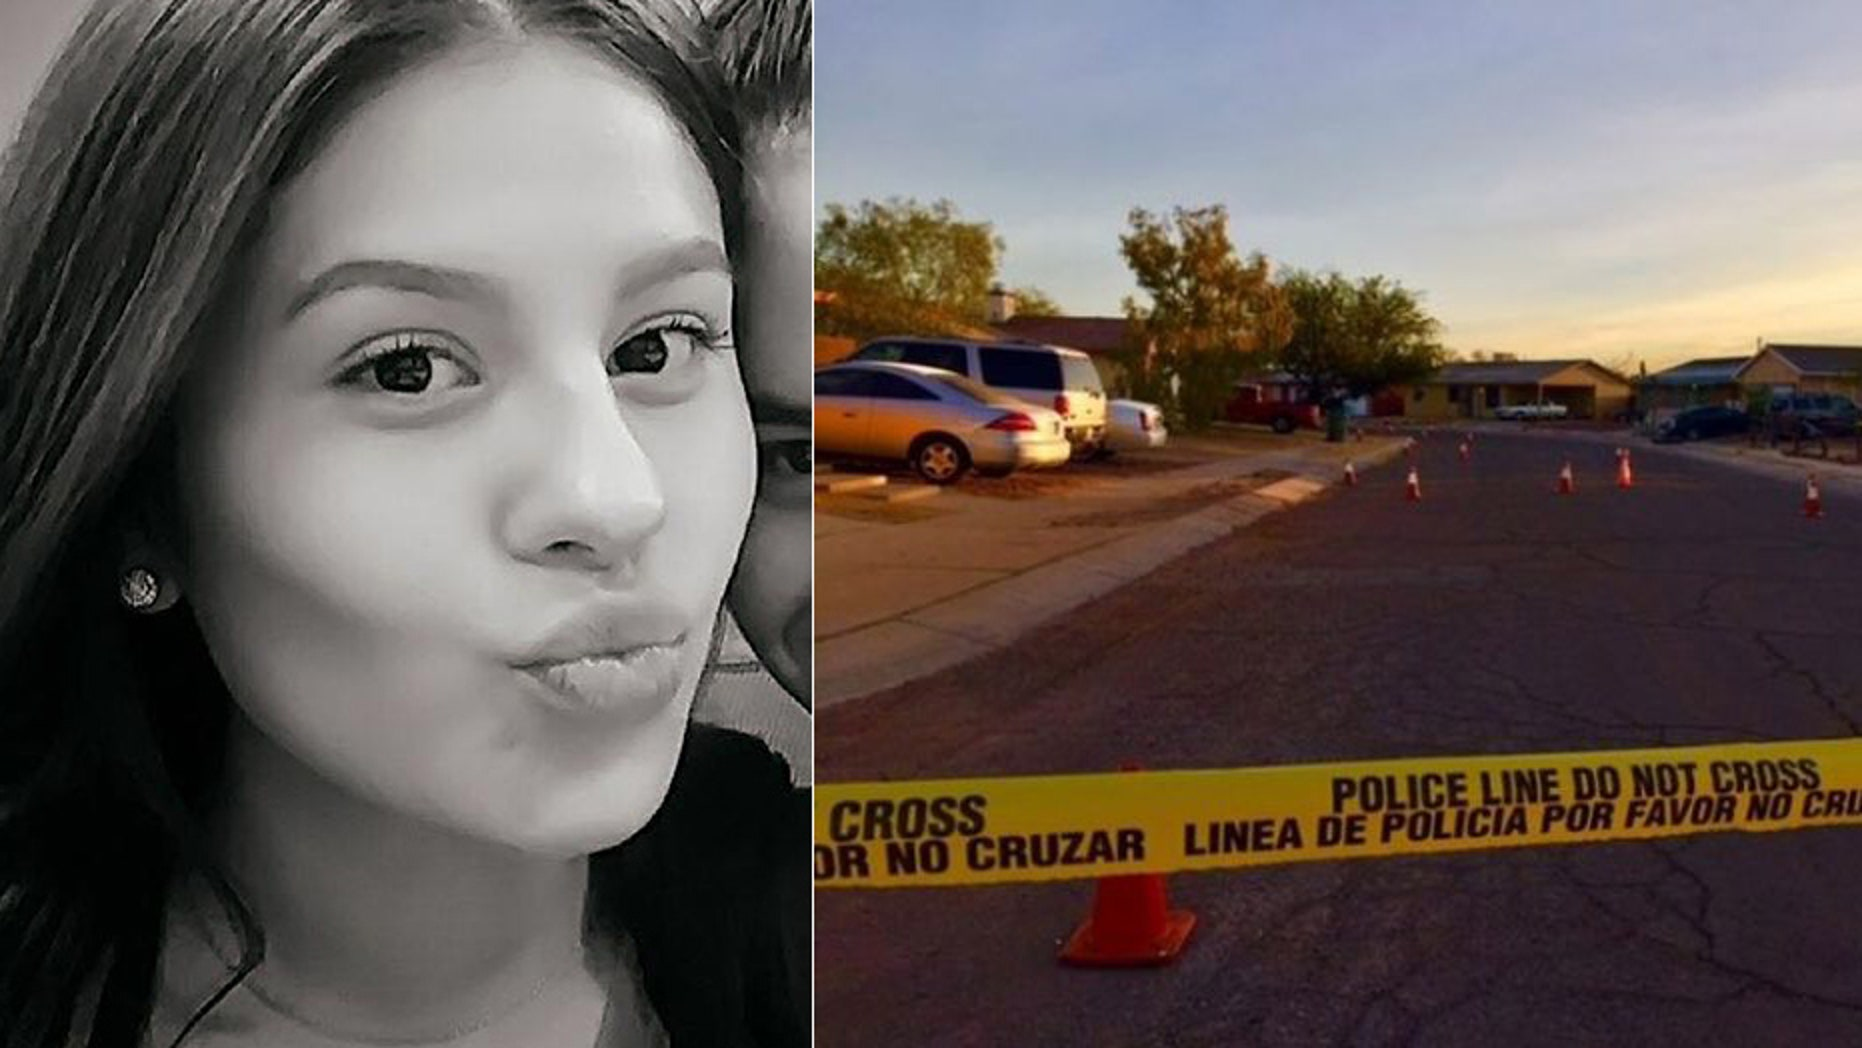 A pregnant woman was shot and killed in her sleep, but doctors were able to deliver her baby, police said.